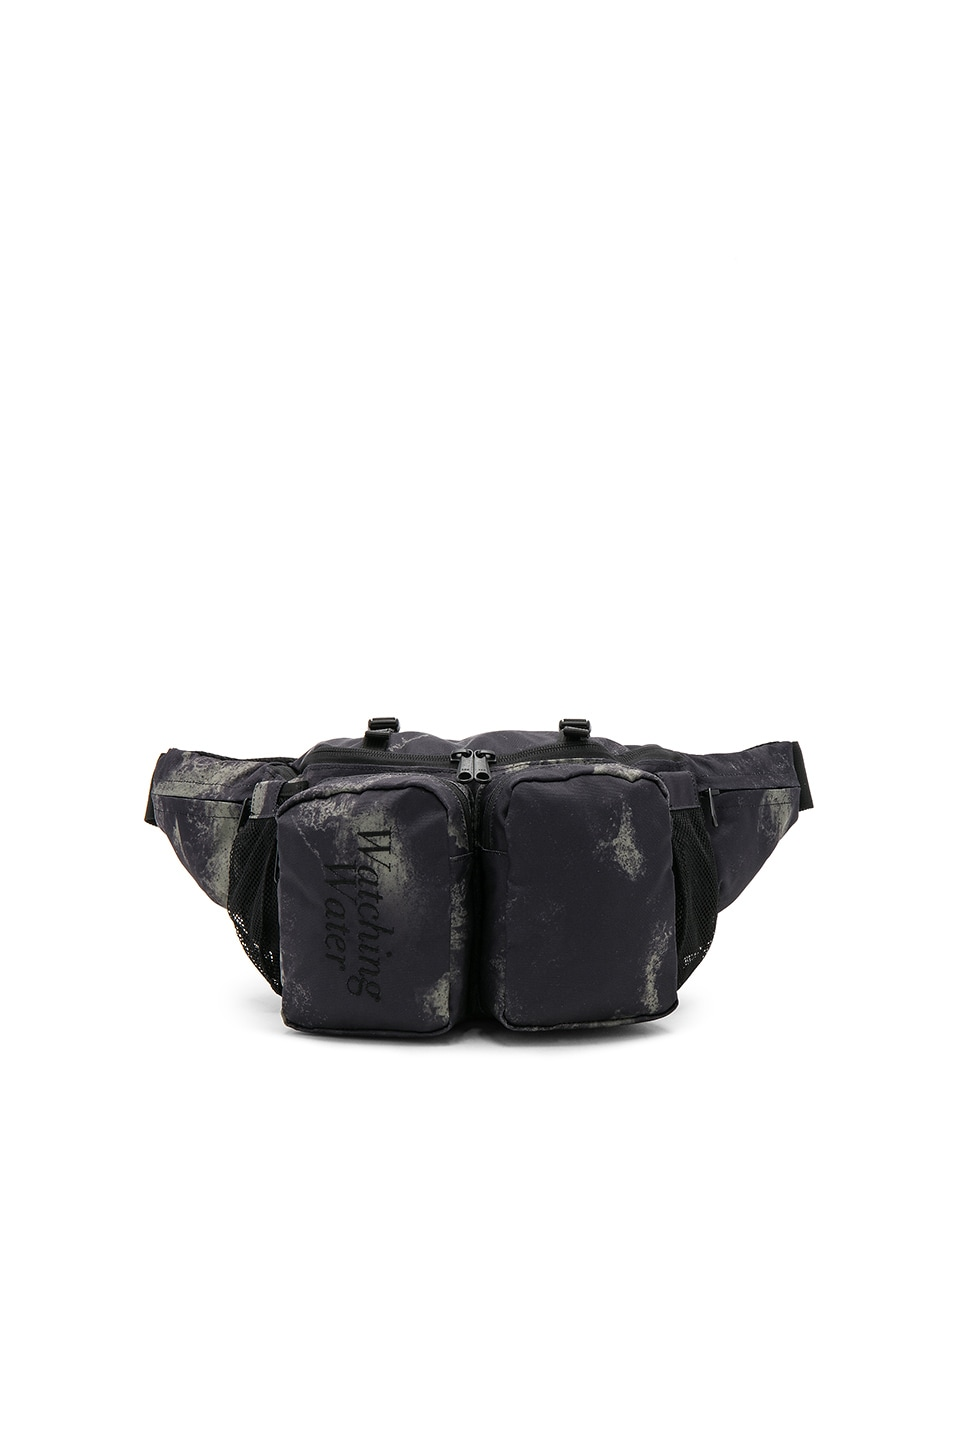 WW Side Bag by JOHN ELLIOTT